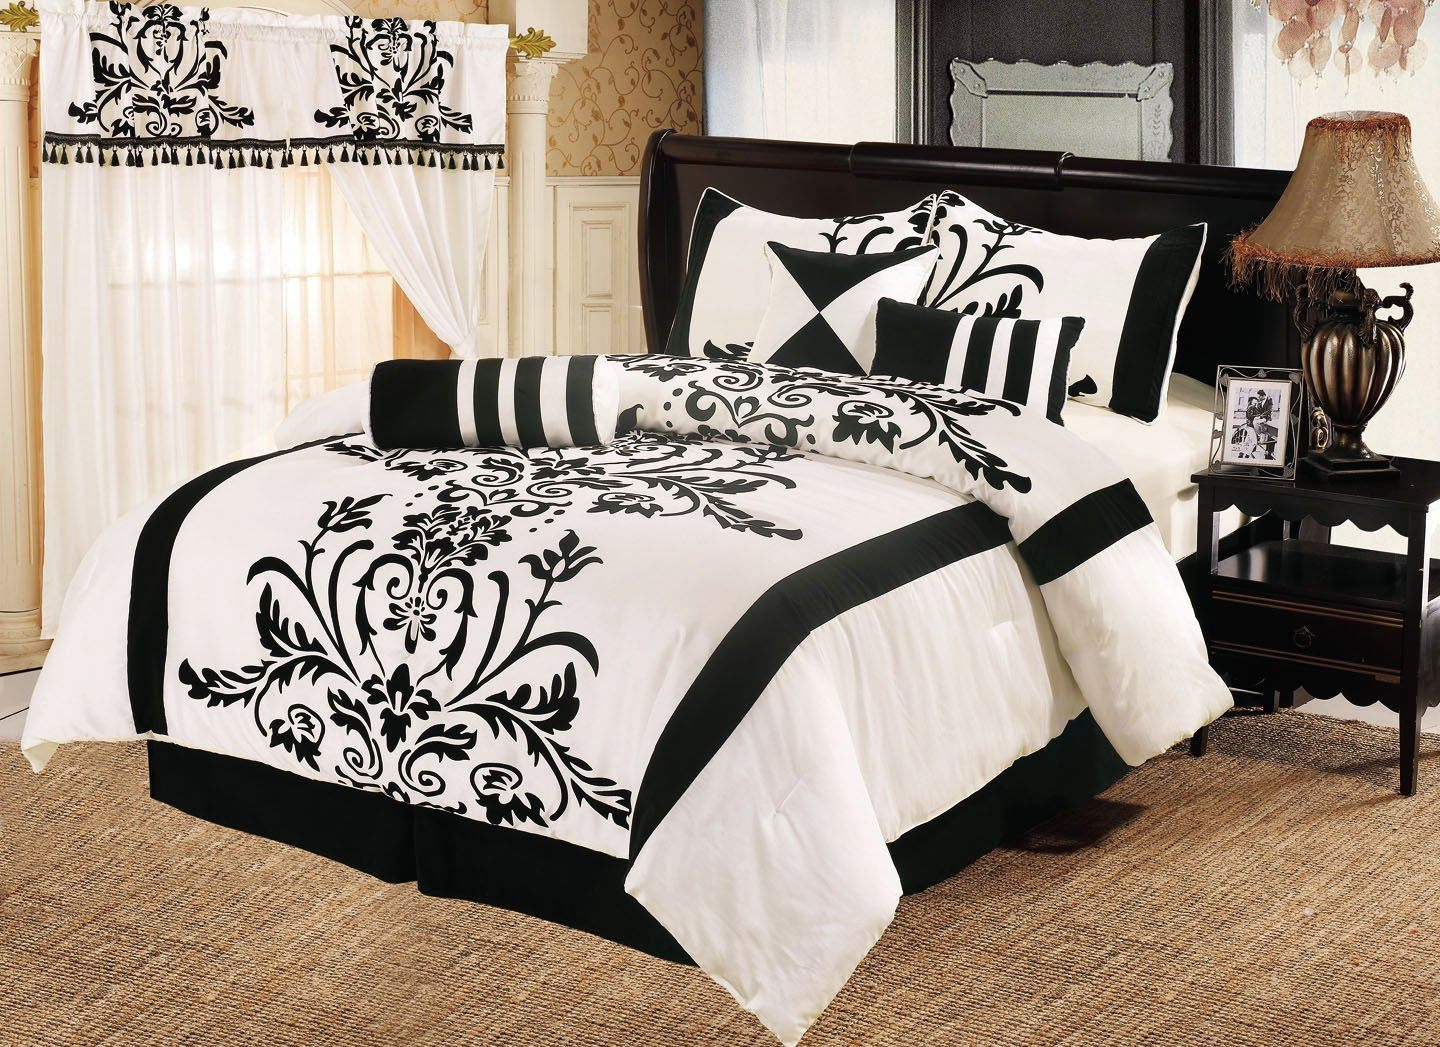 Black and white bedding life